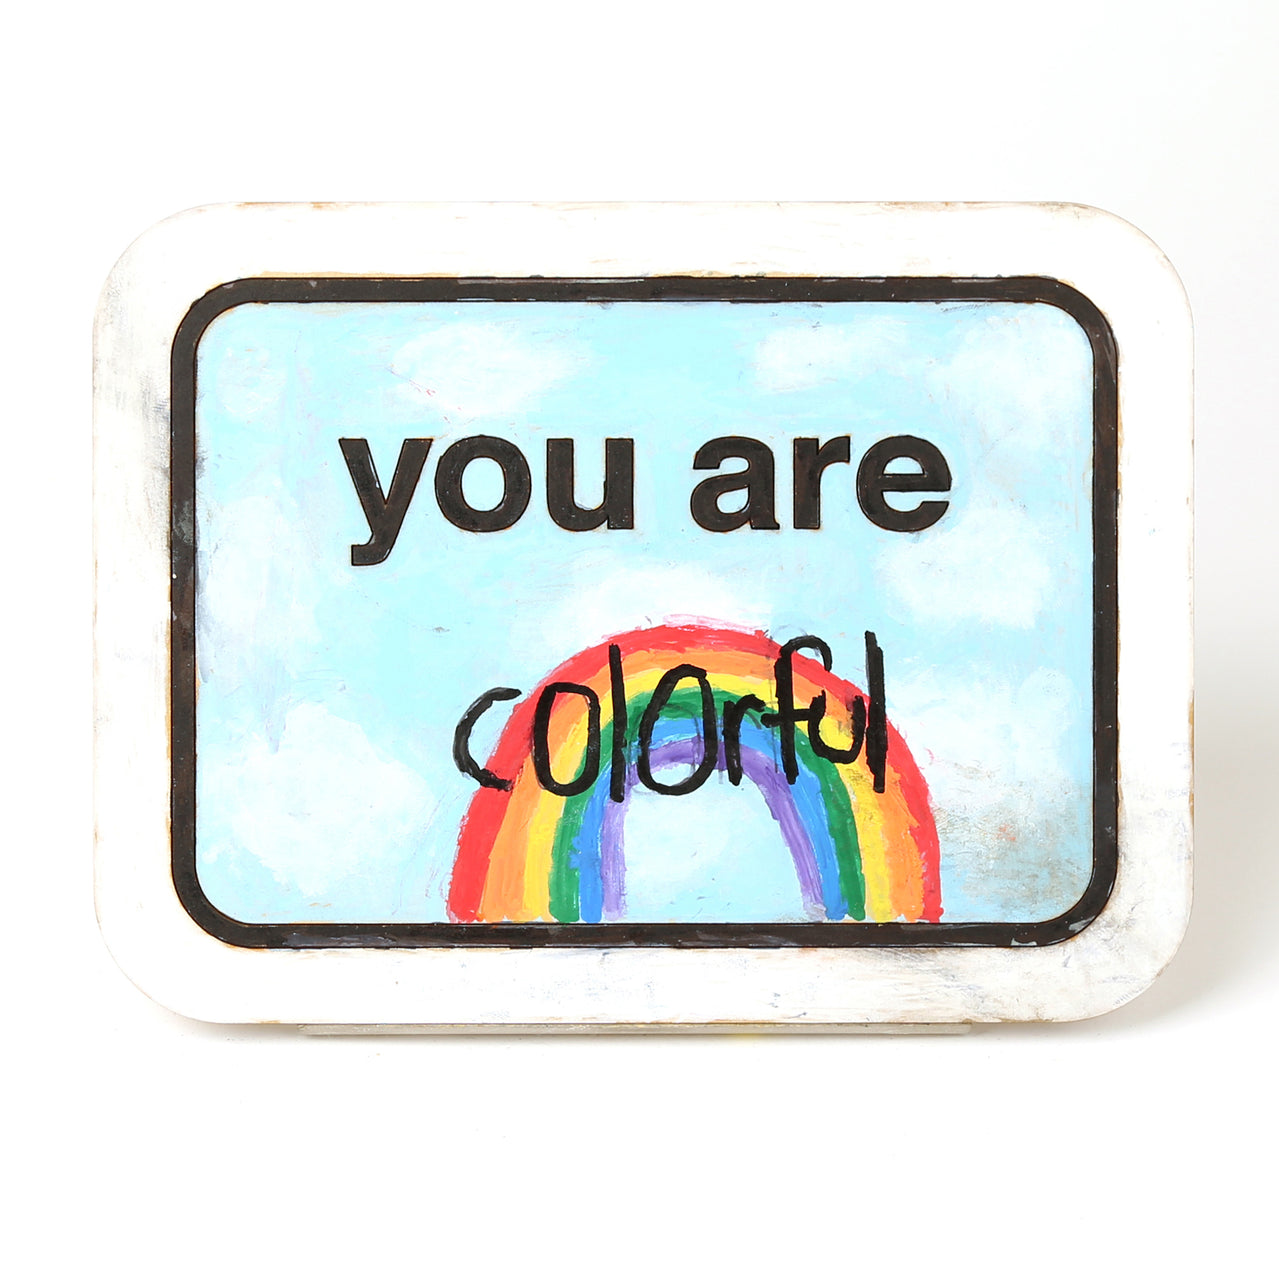 You Are _________ By Penny Mesch